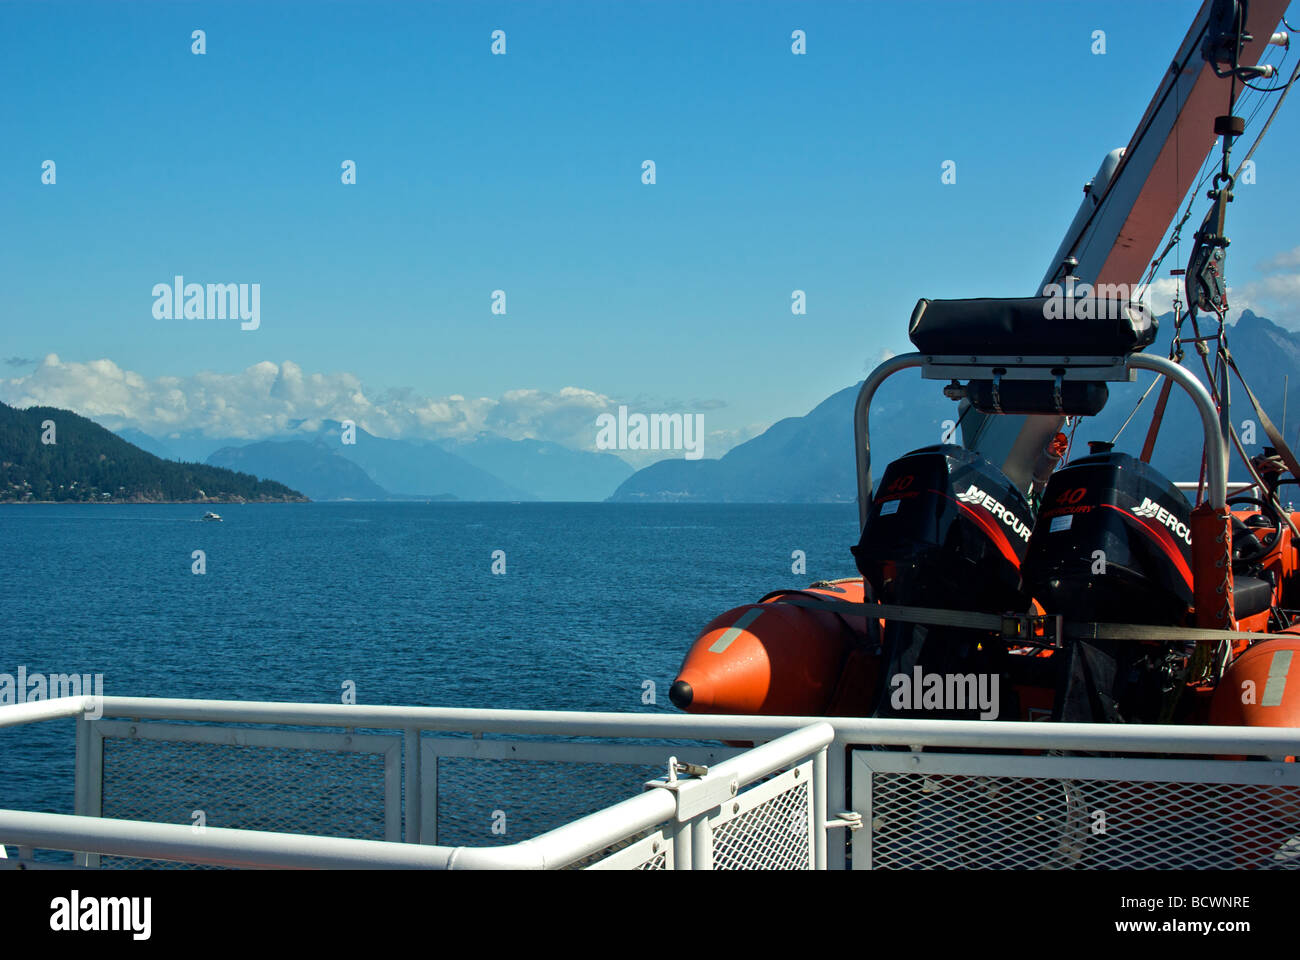 Twin outboard motor powered rigid hull inflatable rescue boat aboard BC Ferry - Stock Image